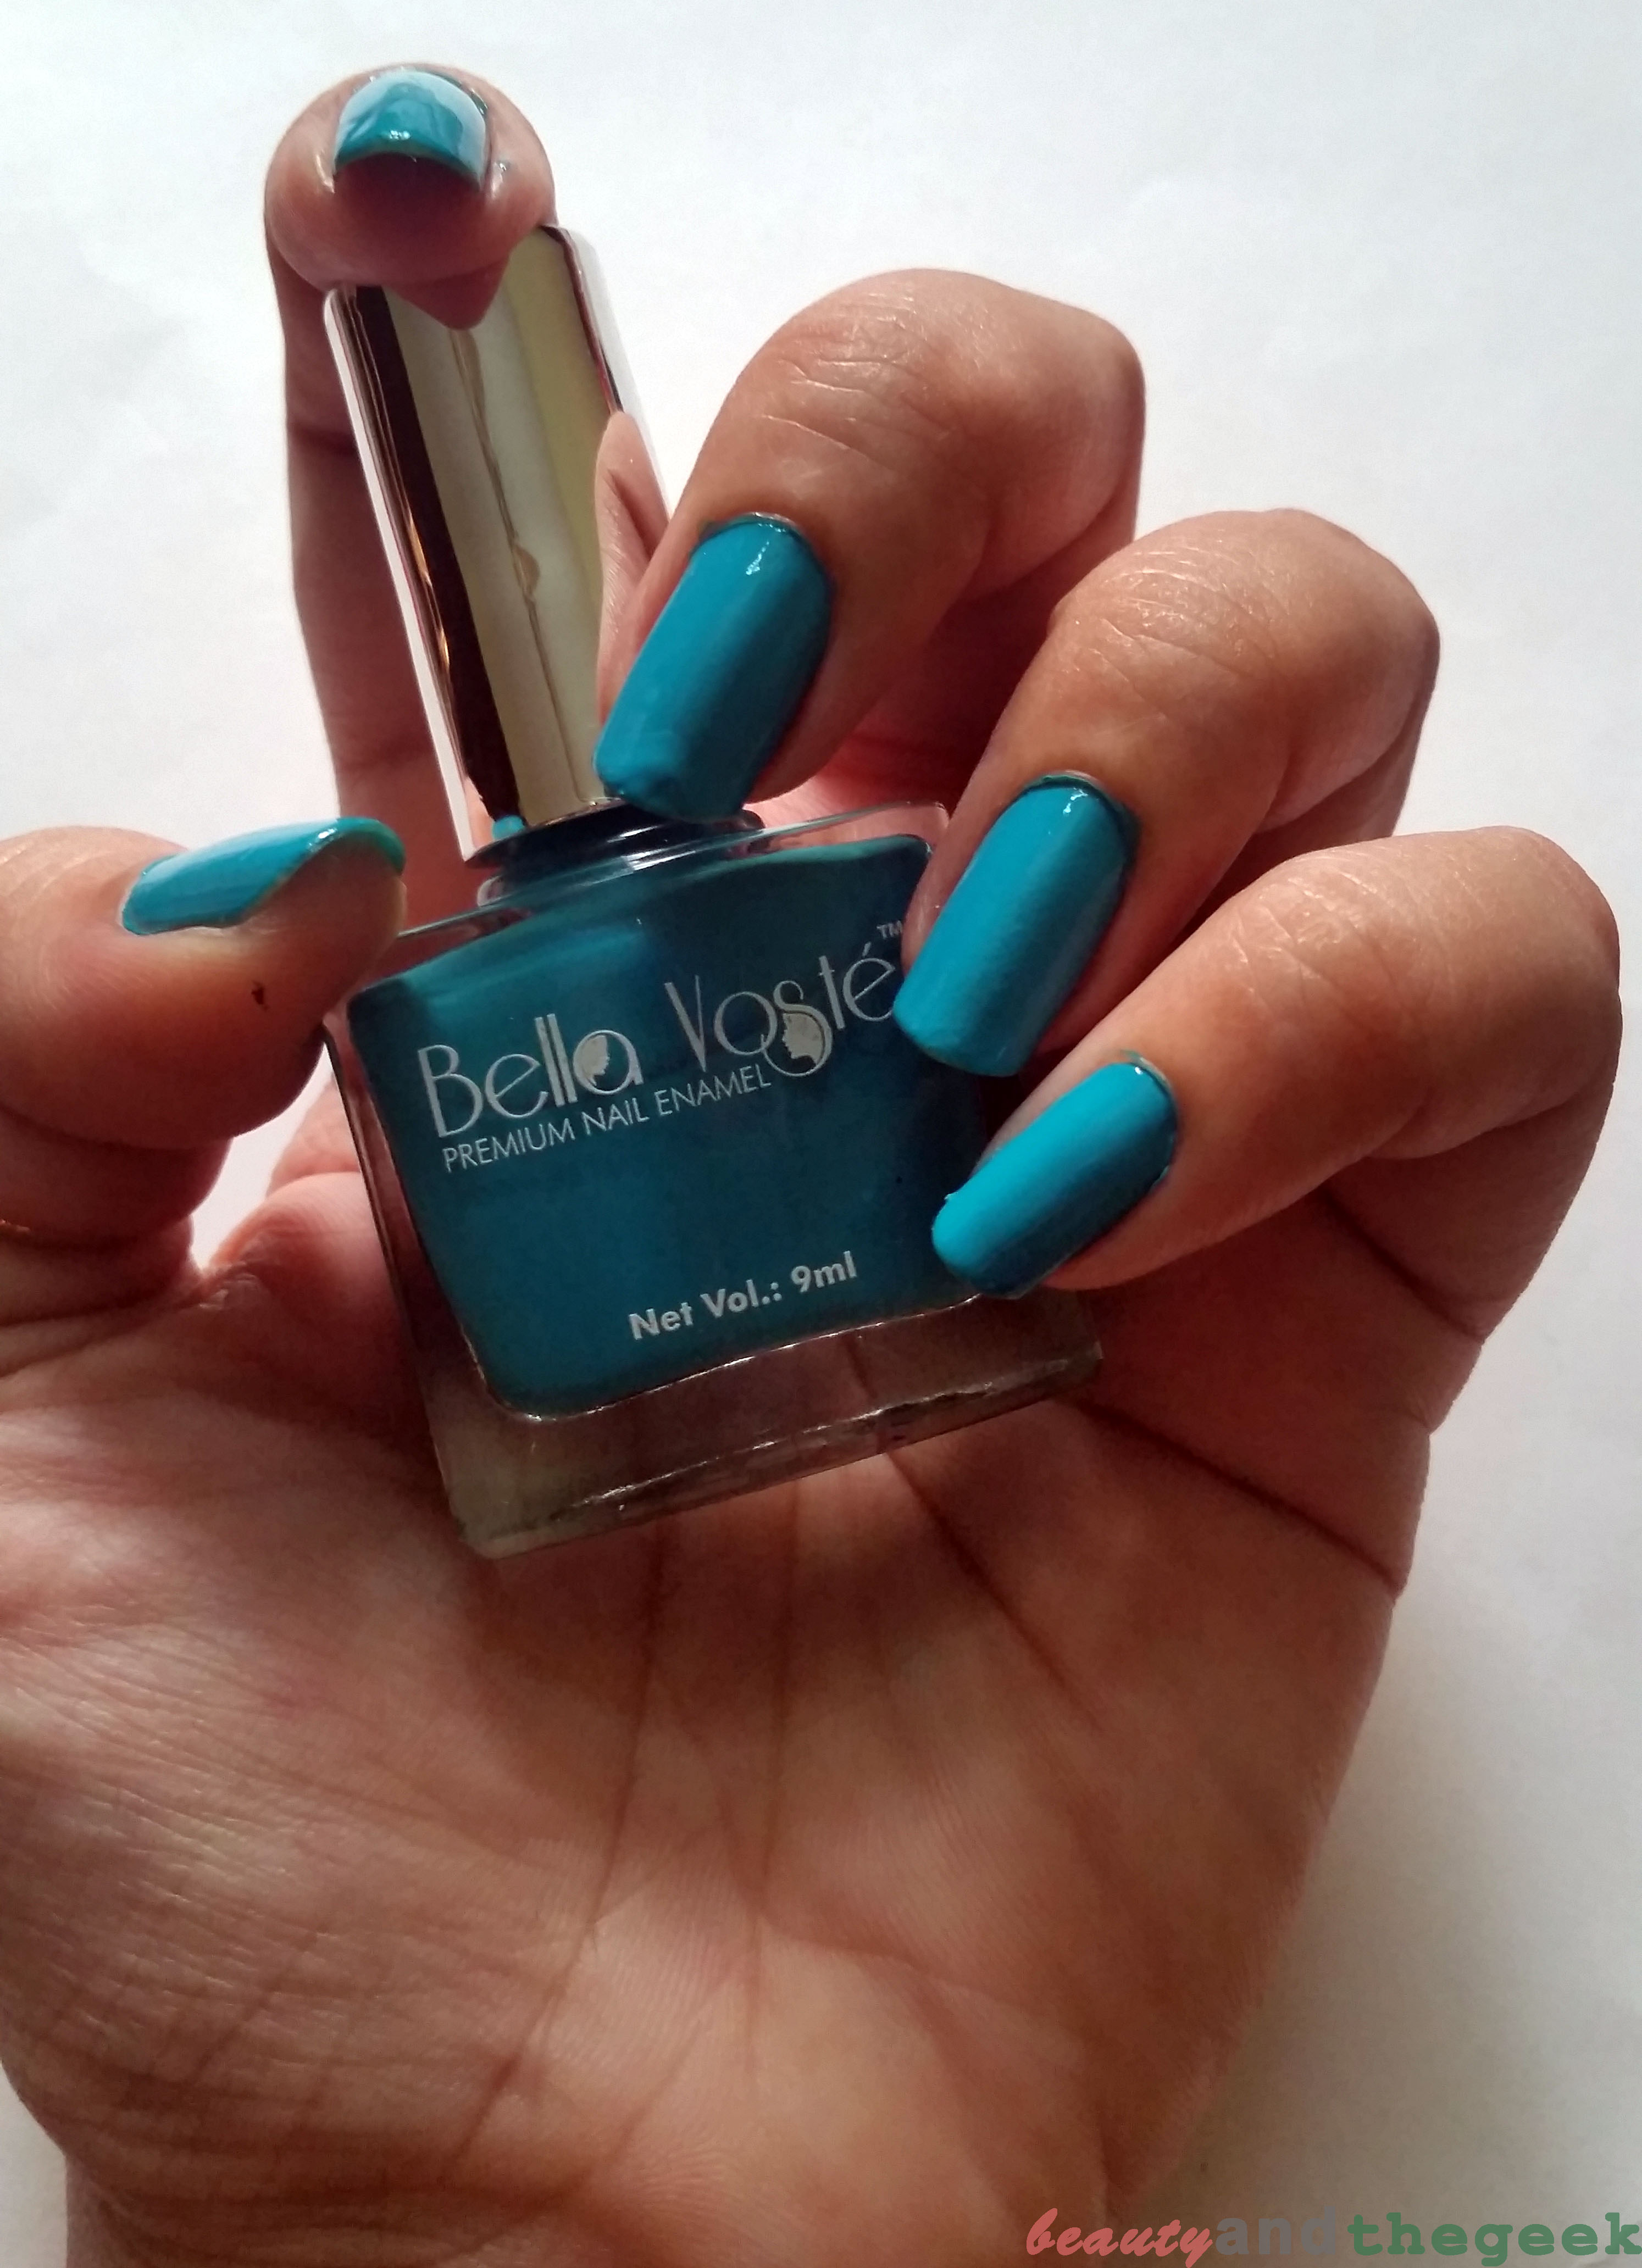 Glam Ego Monthly subscription Box bella voste nail polish